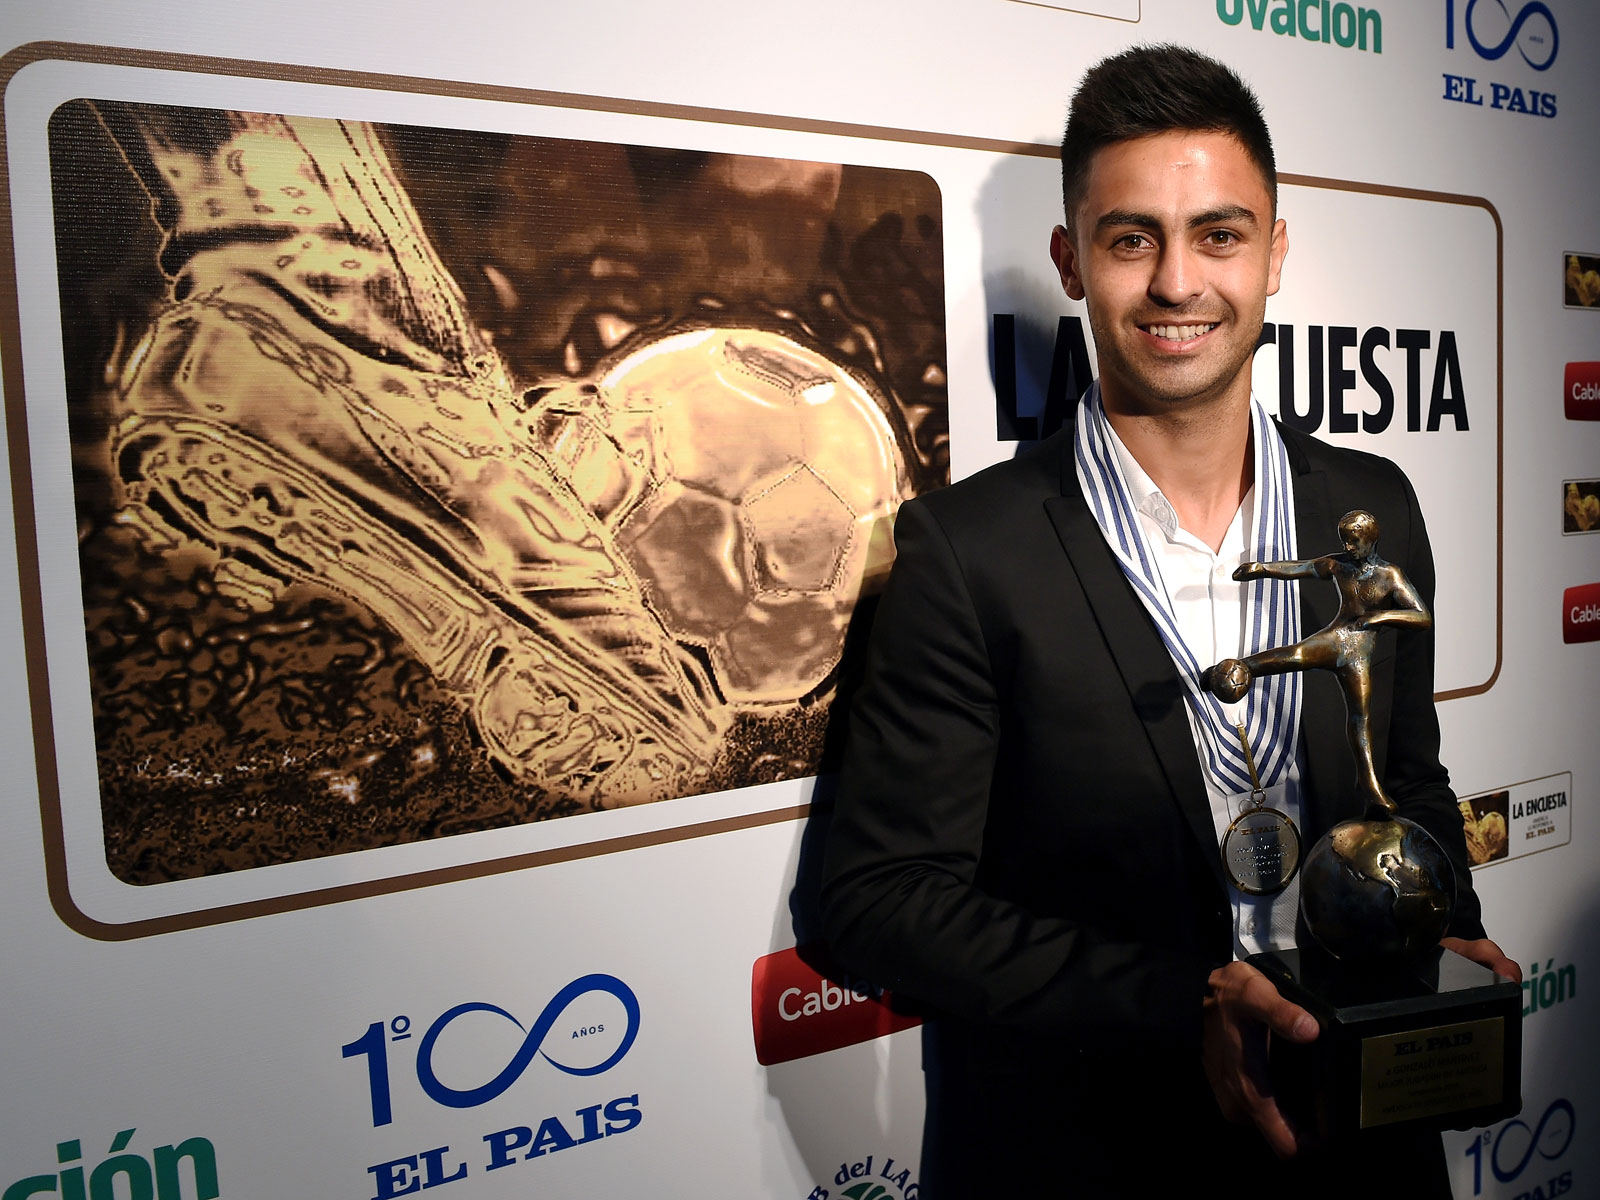 Pity Martinez is named South America's player of the year